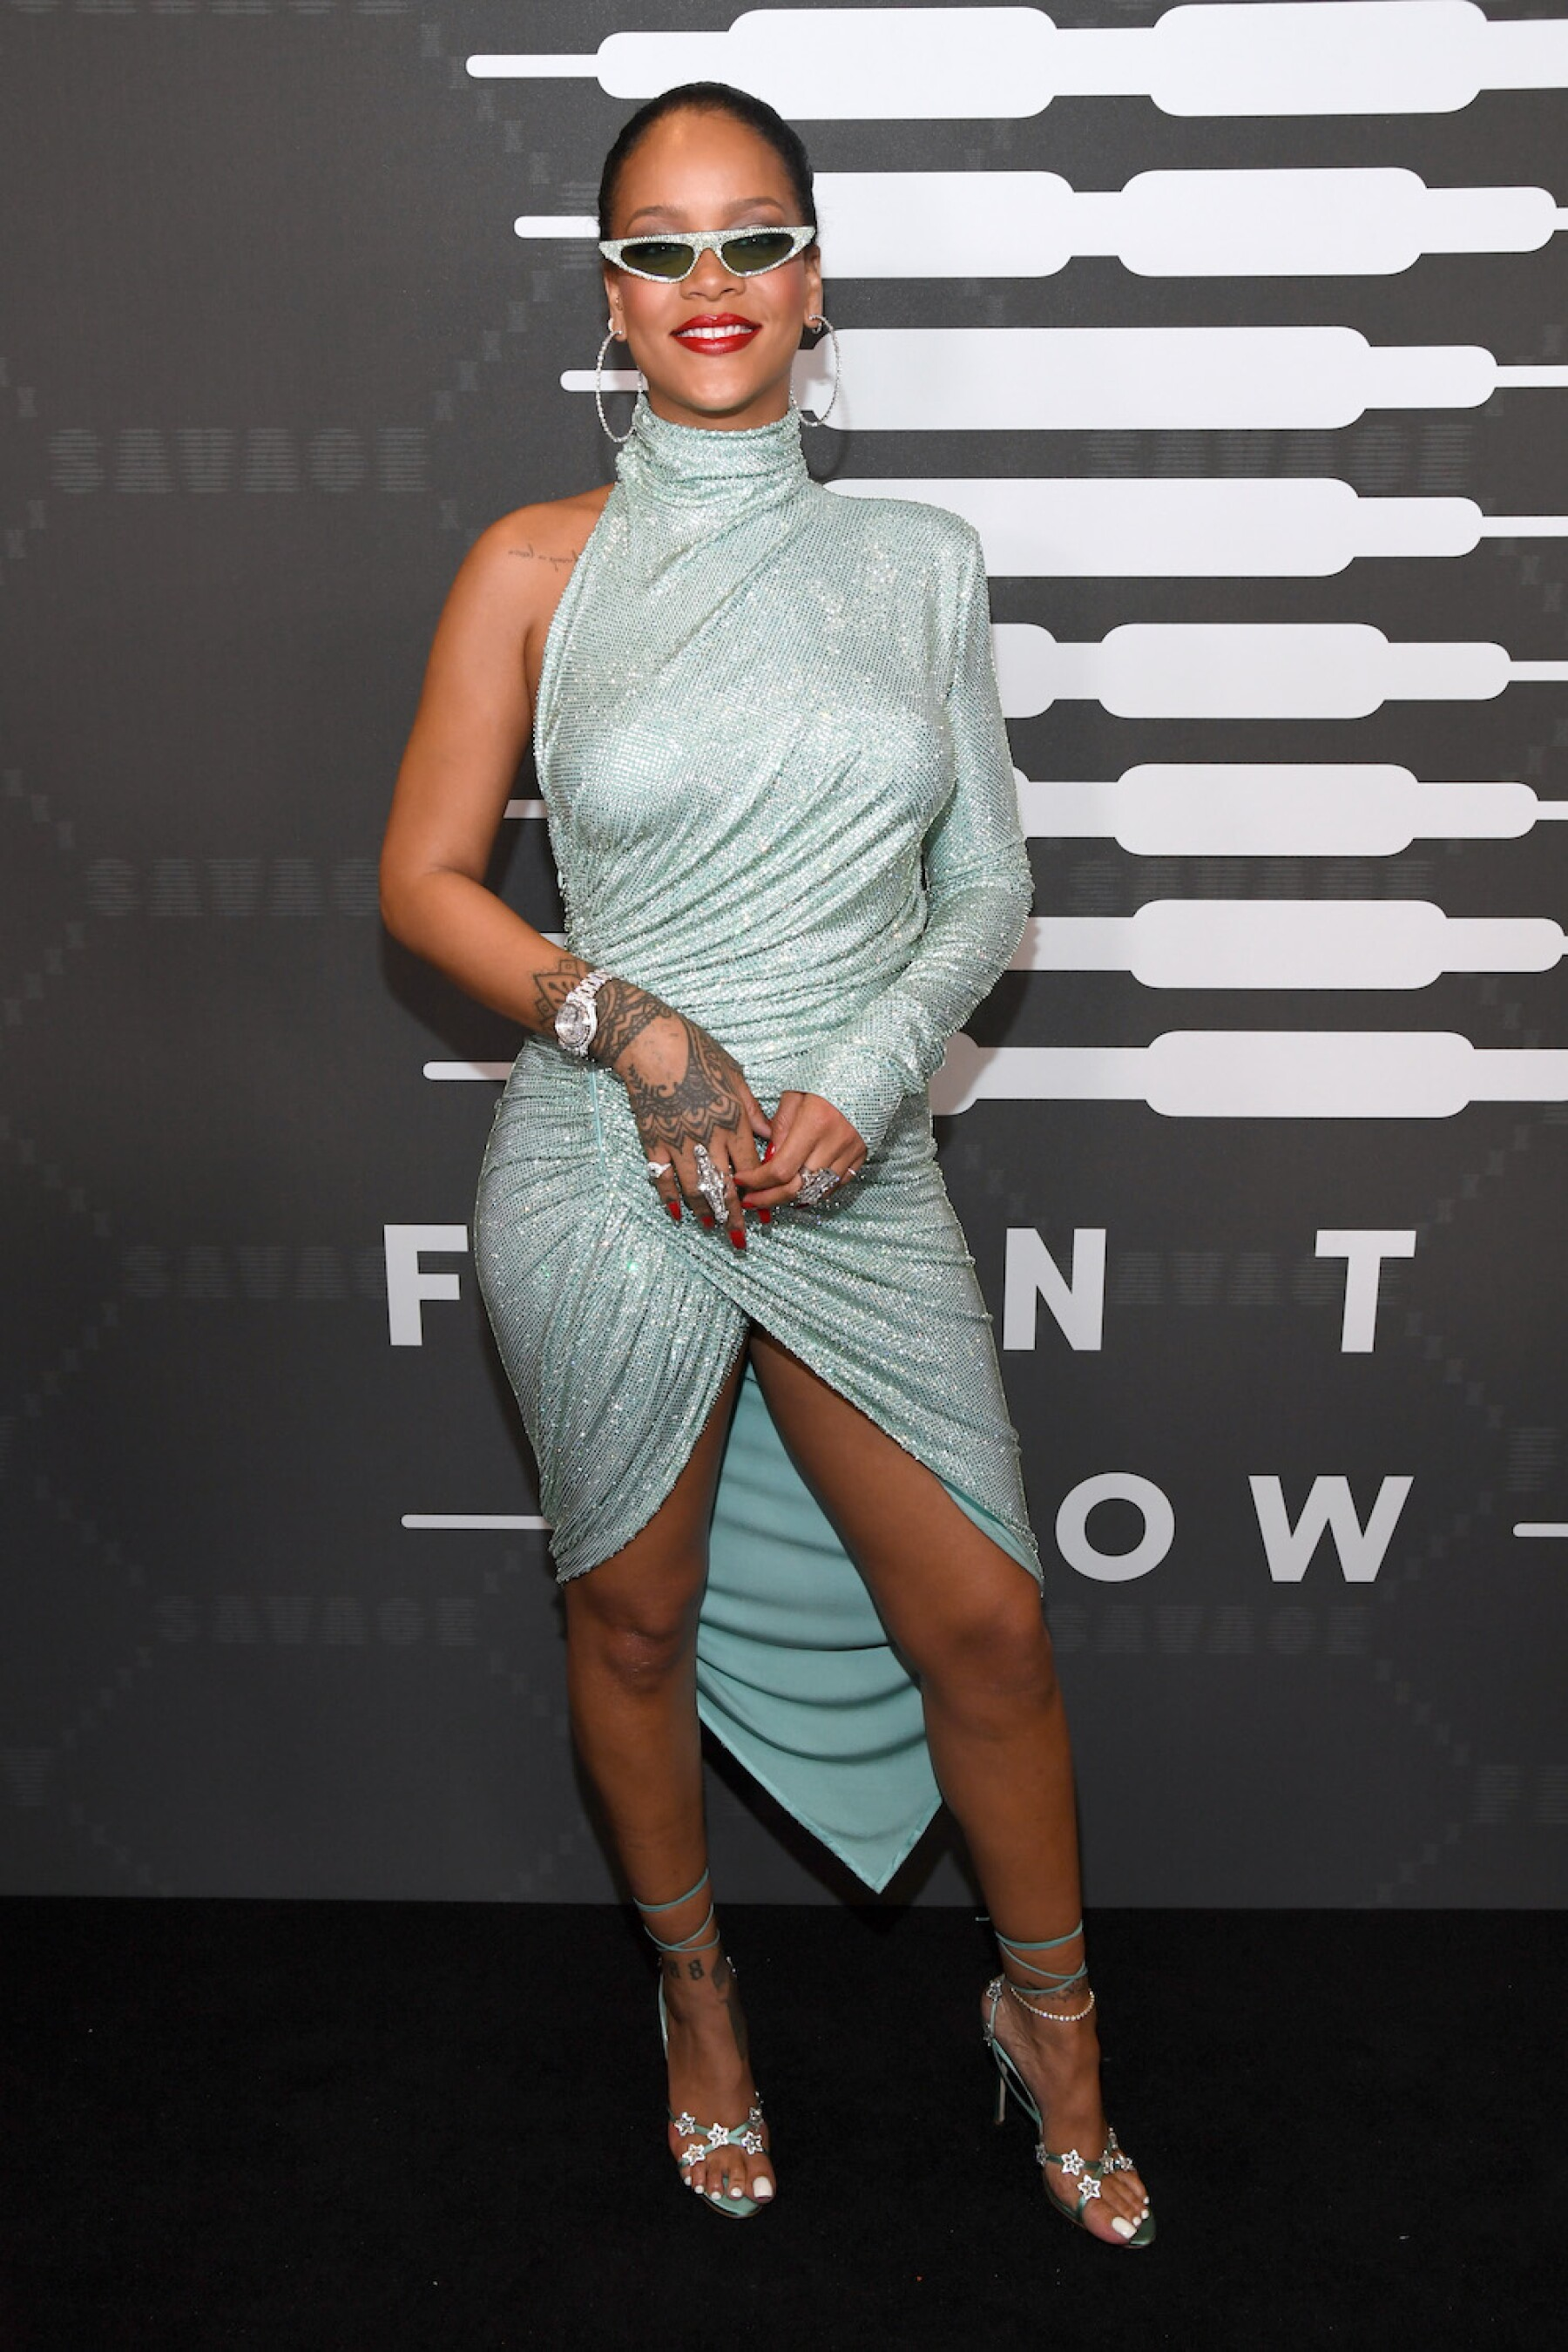 Savage X Fenty Show Presented By Amazon Prime Video - Arrivals